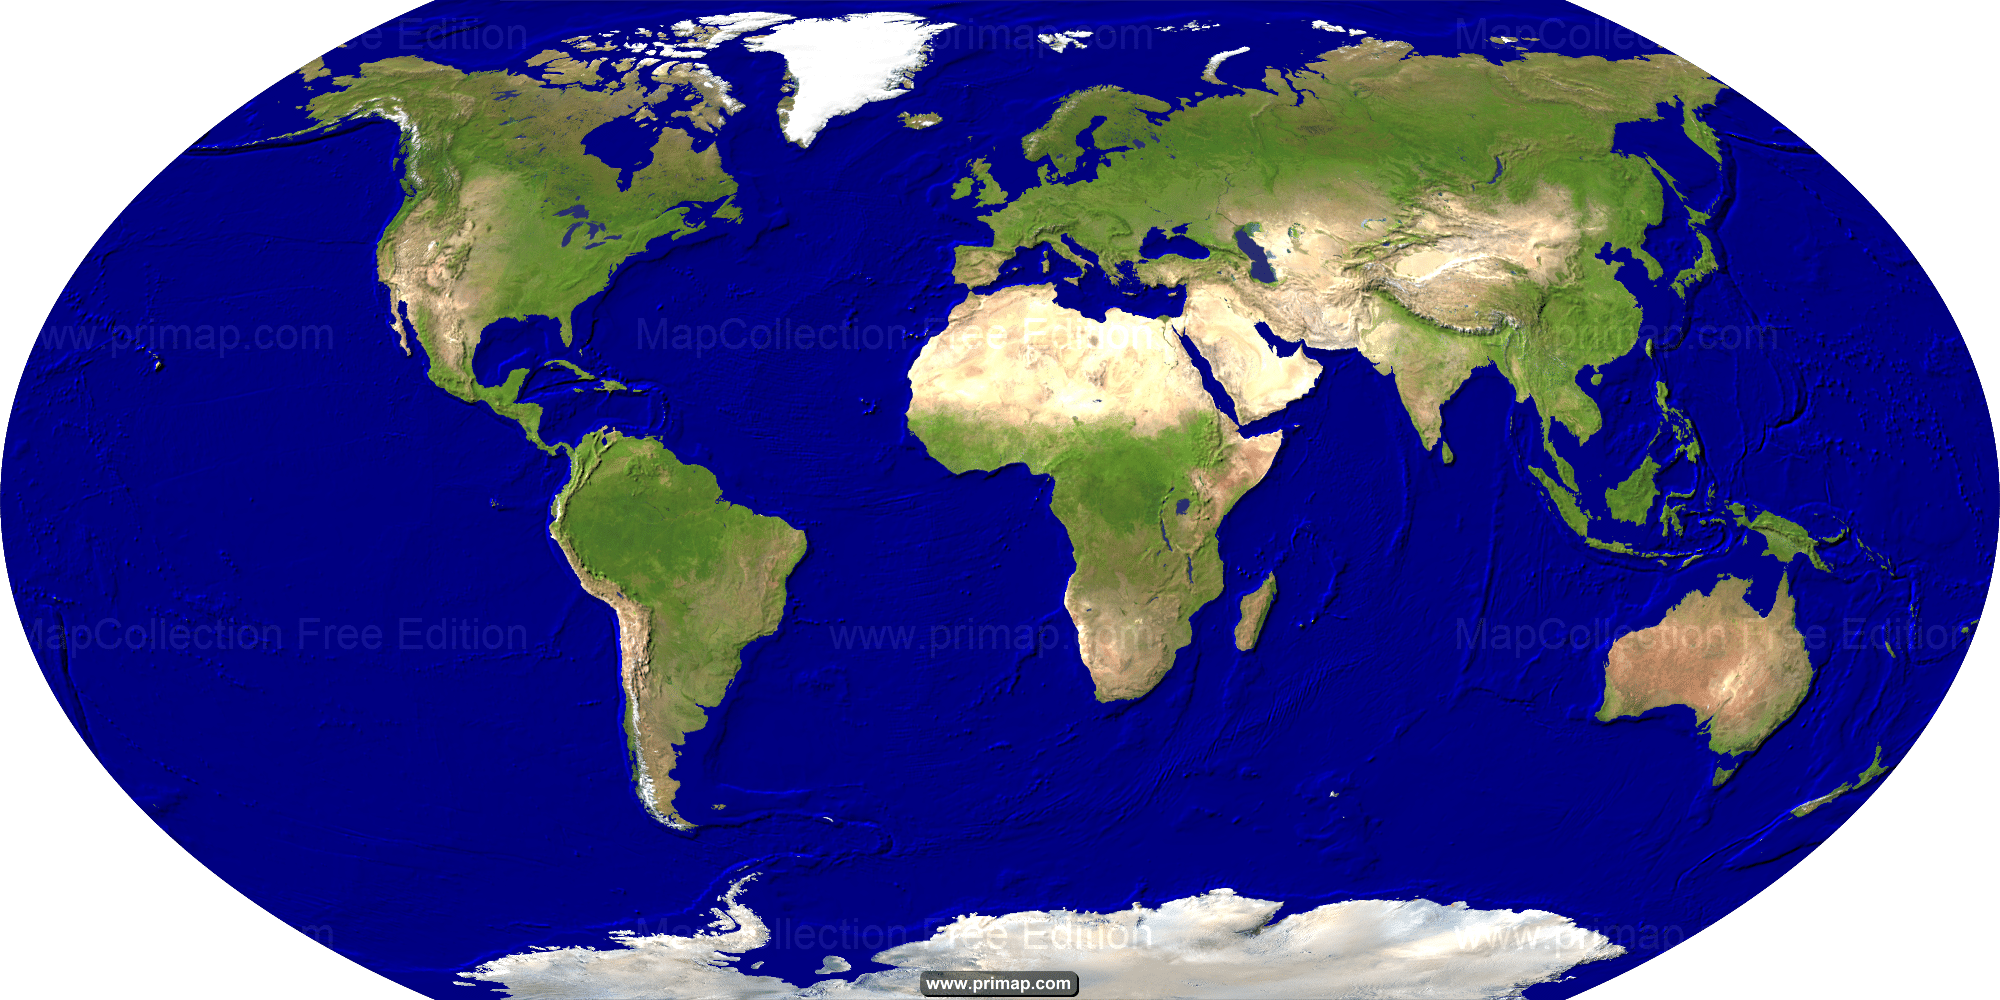 Satellite world map hd images free hd images world map satellite image gumiabroncs Choice Image